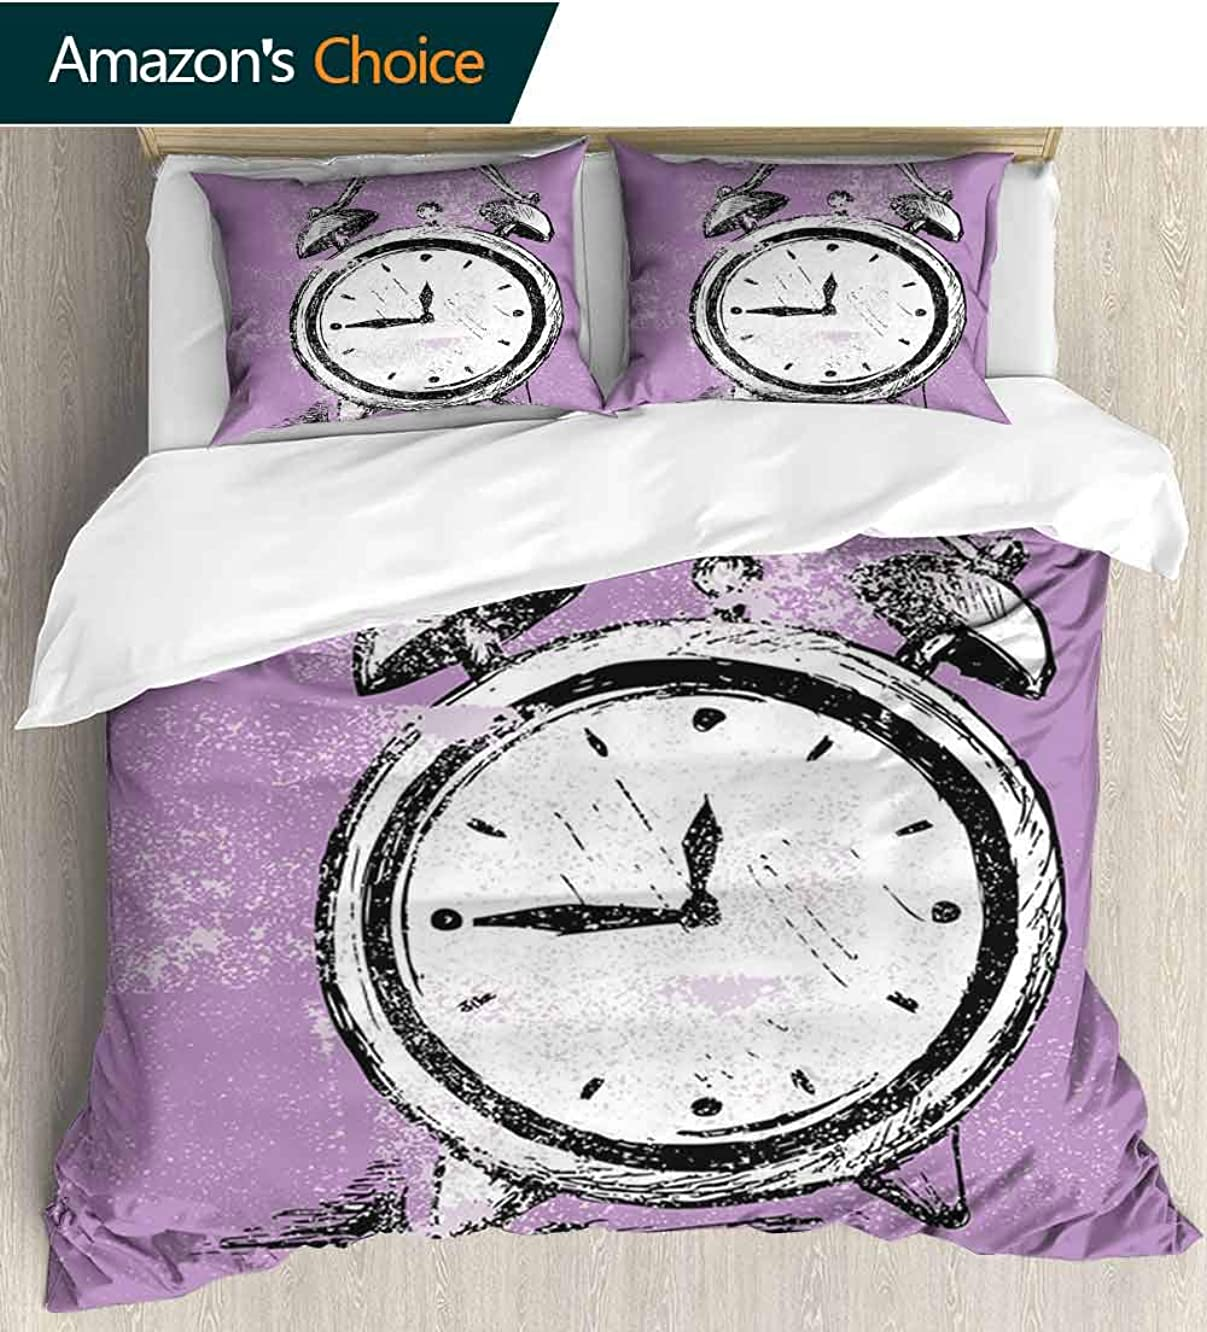 Doodle Full Queen Duvet Cover Sets,Retro Alarm Clock Figure with Grunge Effects Classic Vintage Sleep Graphic Duvet Cover with Pillowcases Child Bedding Sets, 79